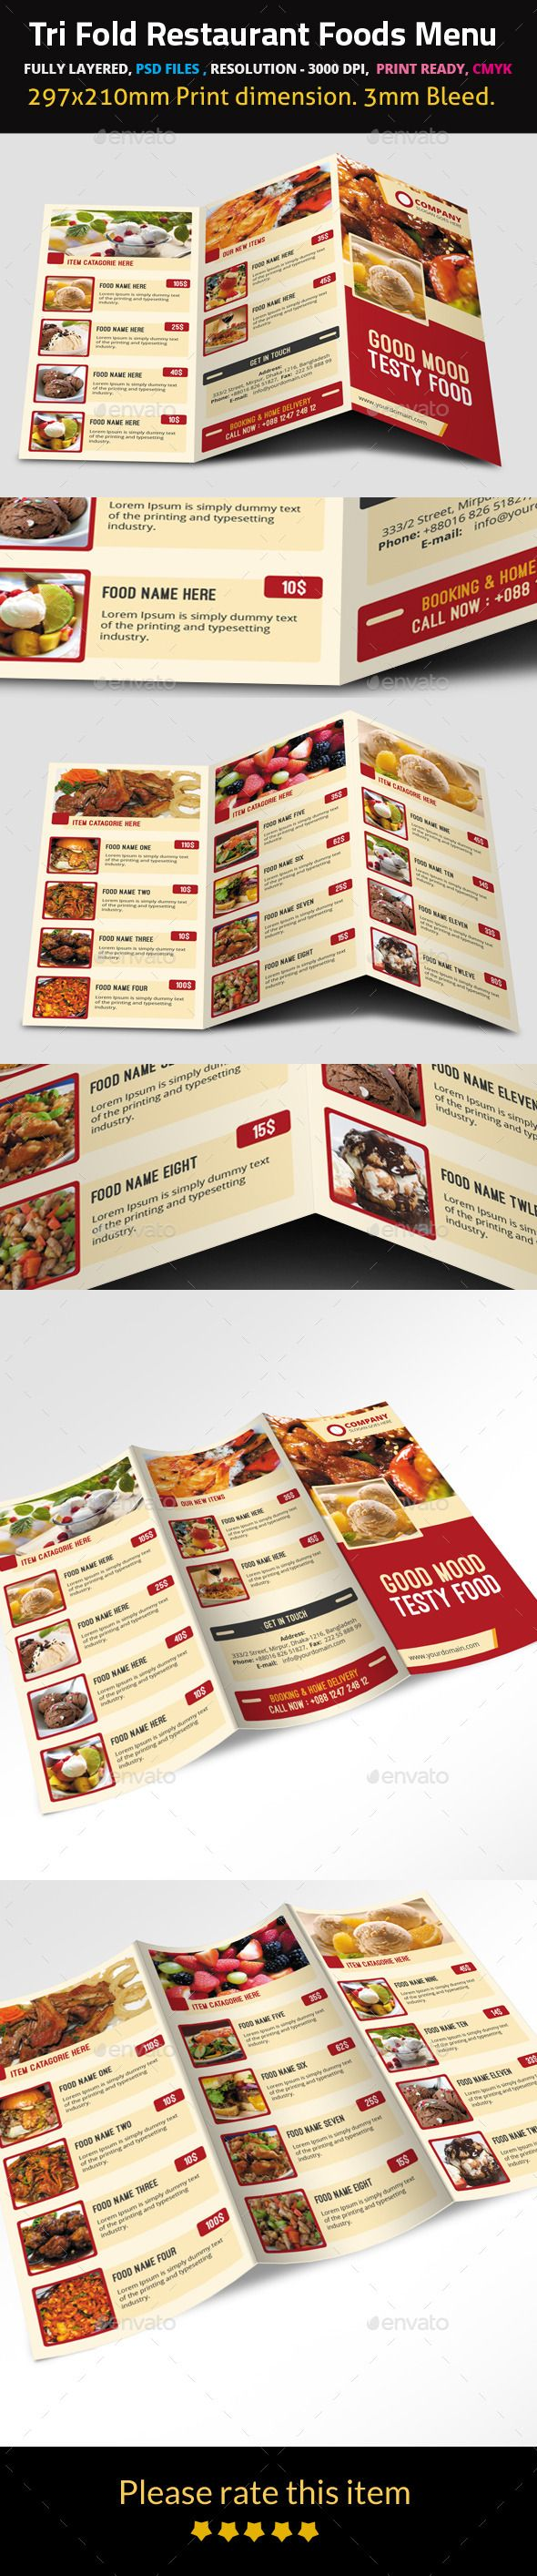 Tri Fold Restaurant Foods Menu